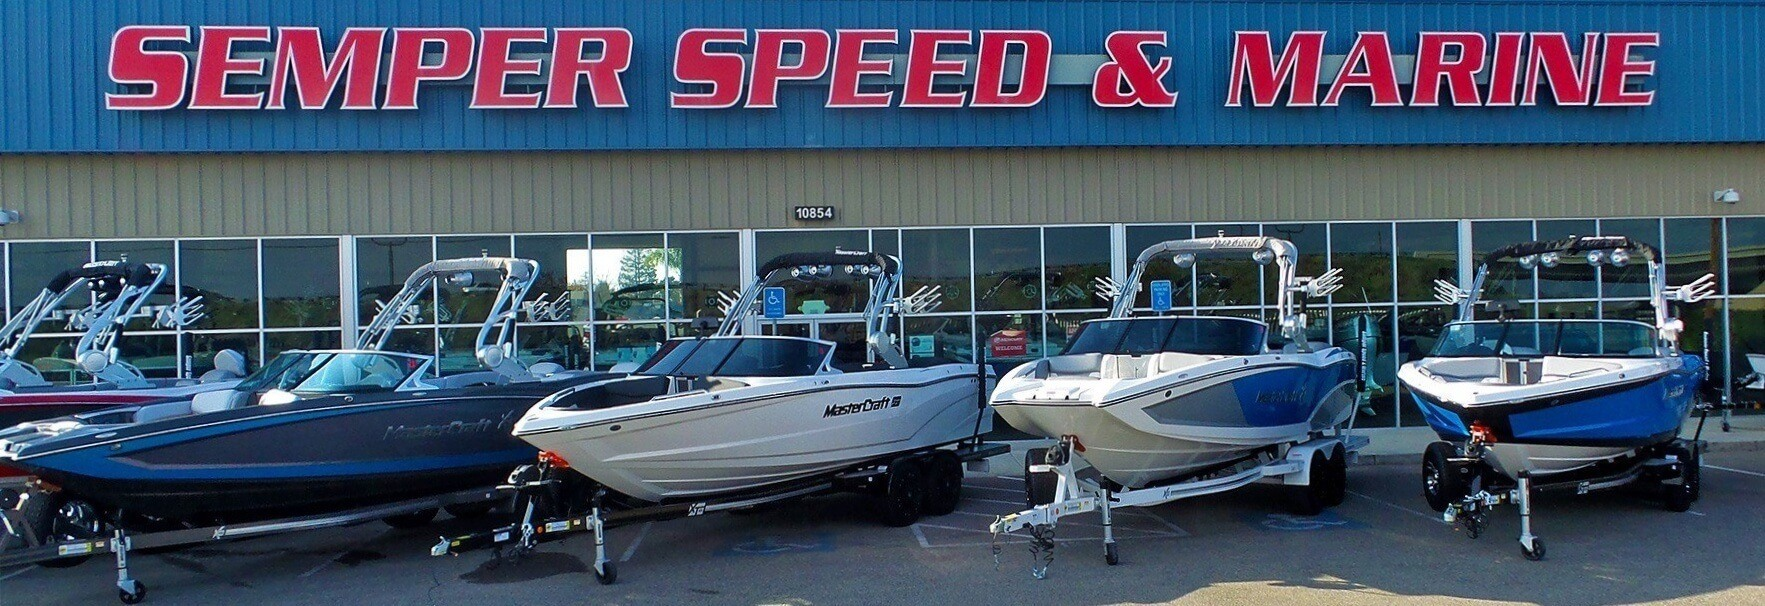 WE FIX BOATS BANNER SIGN outboard sterndrive repairs marine electrontic